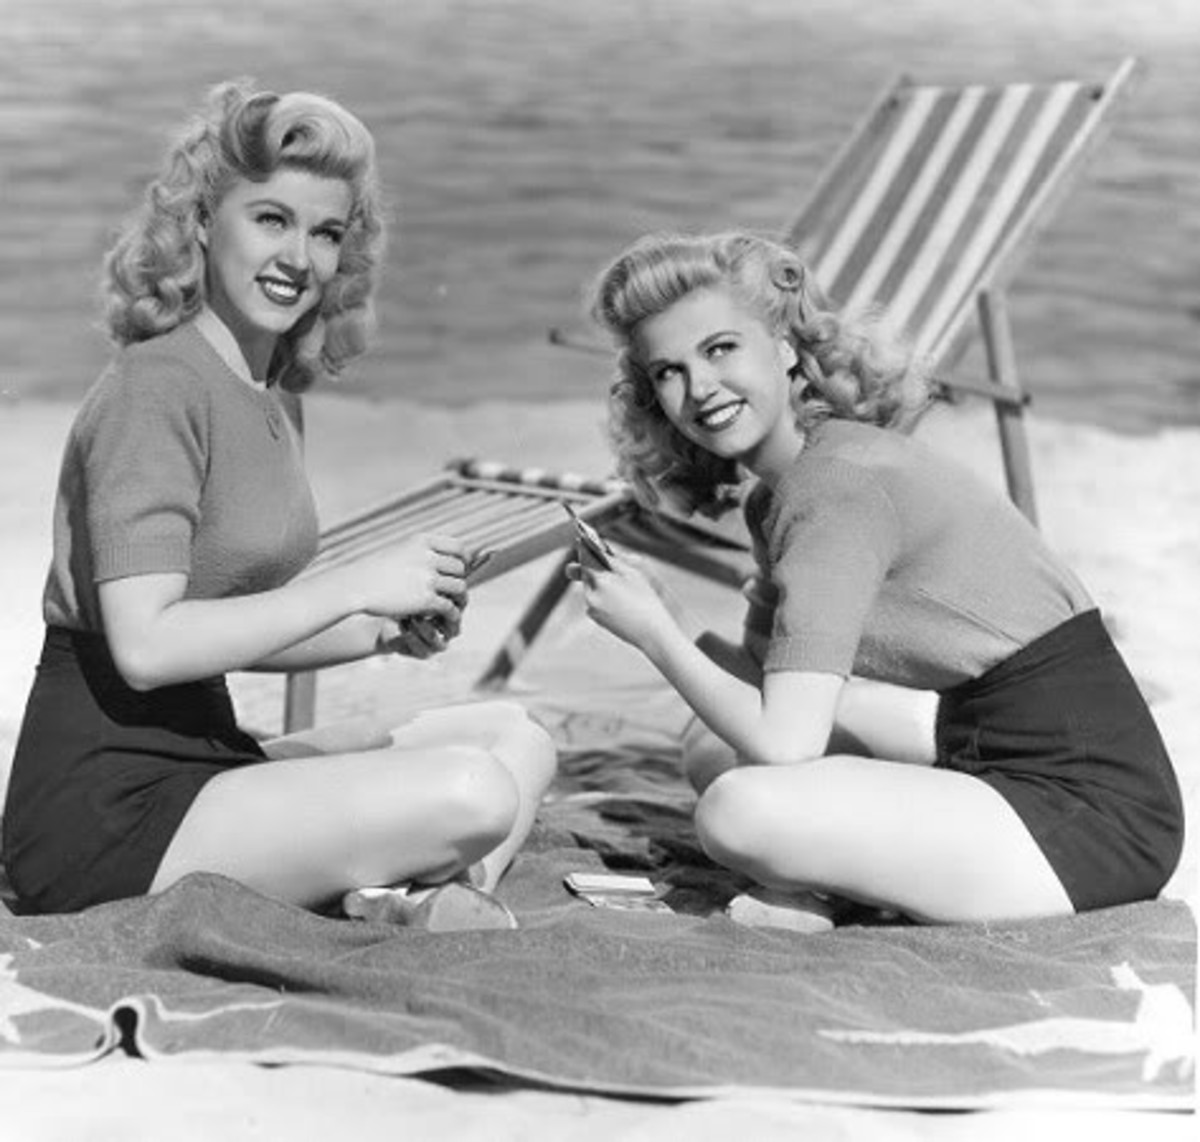 Victory rolls were not only stylish, but they were also patriotic.